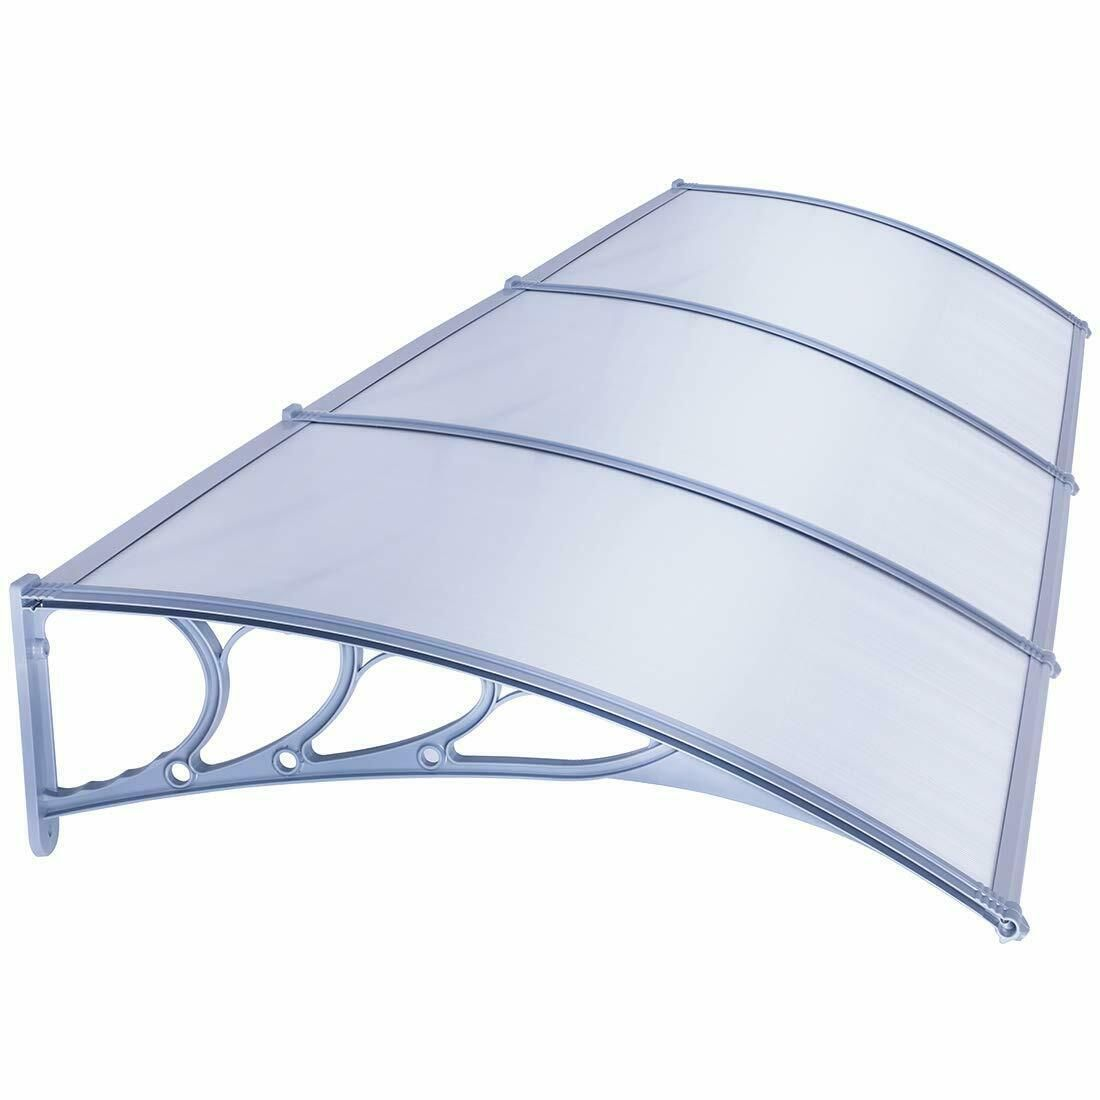 Vivohome Polycarbonate Outdoor Window Front Door Canopy Awning Cover Patio New A Awning Canopy Cove In 2020 Front Doors With Windows Front Door Canopy Door Canopy